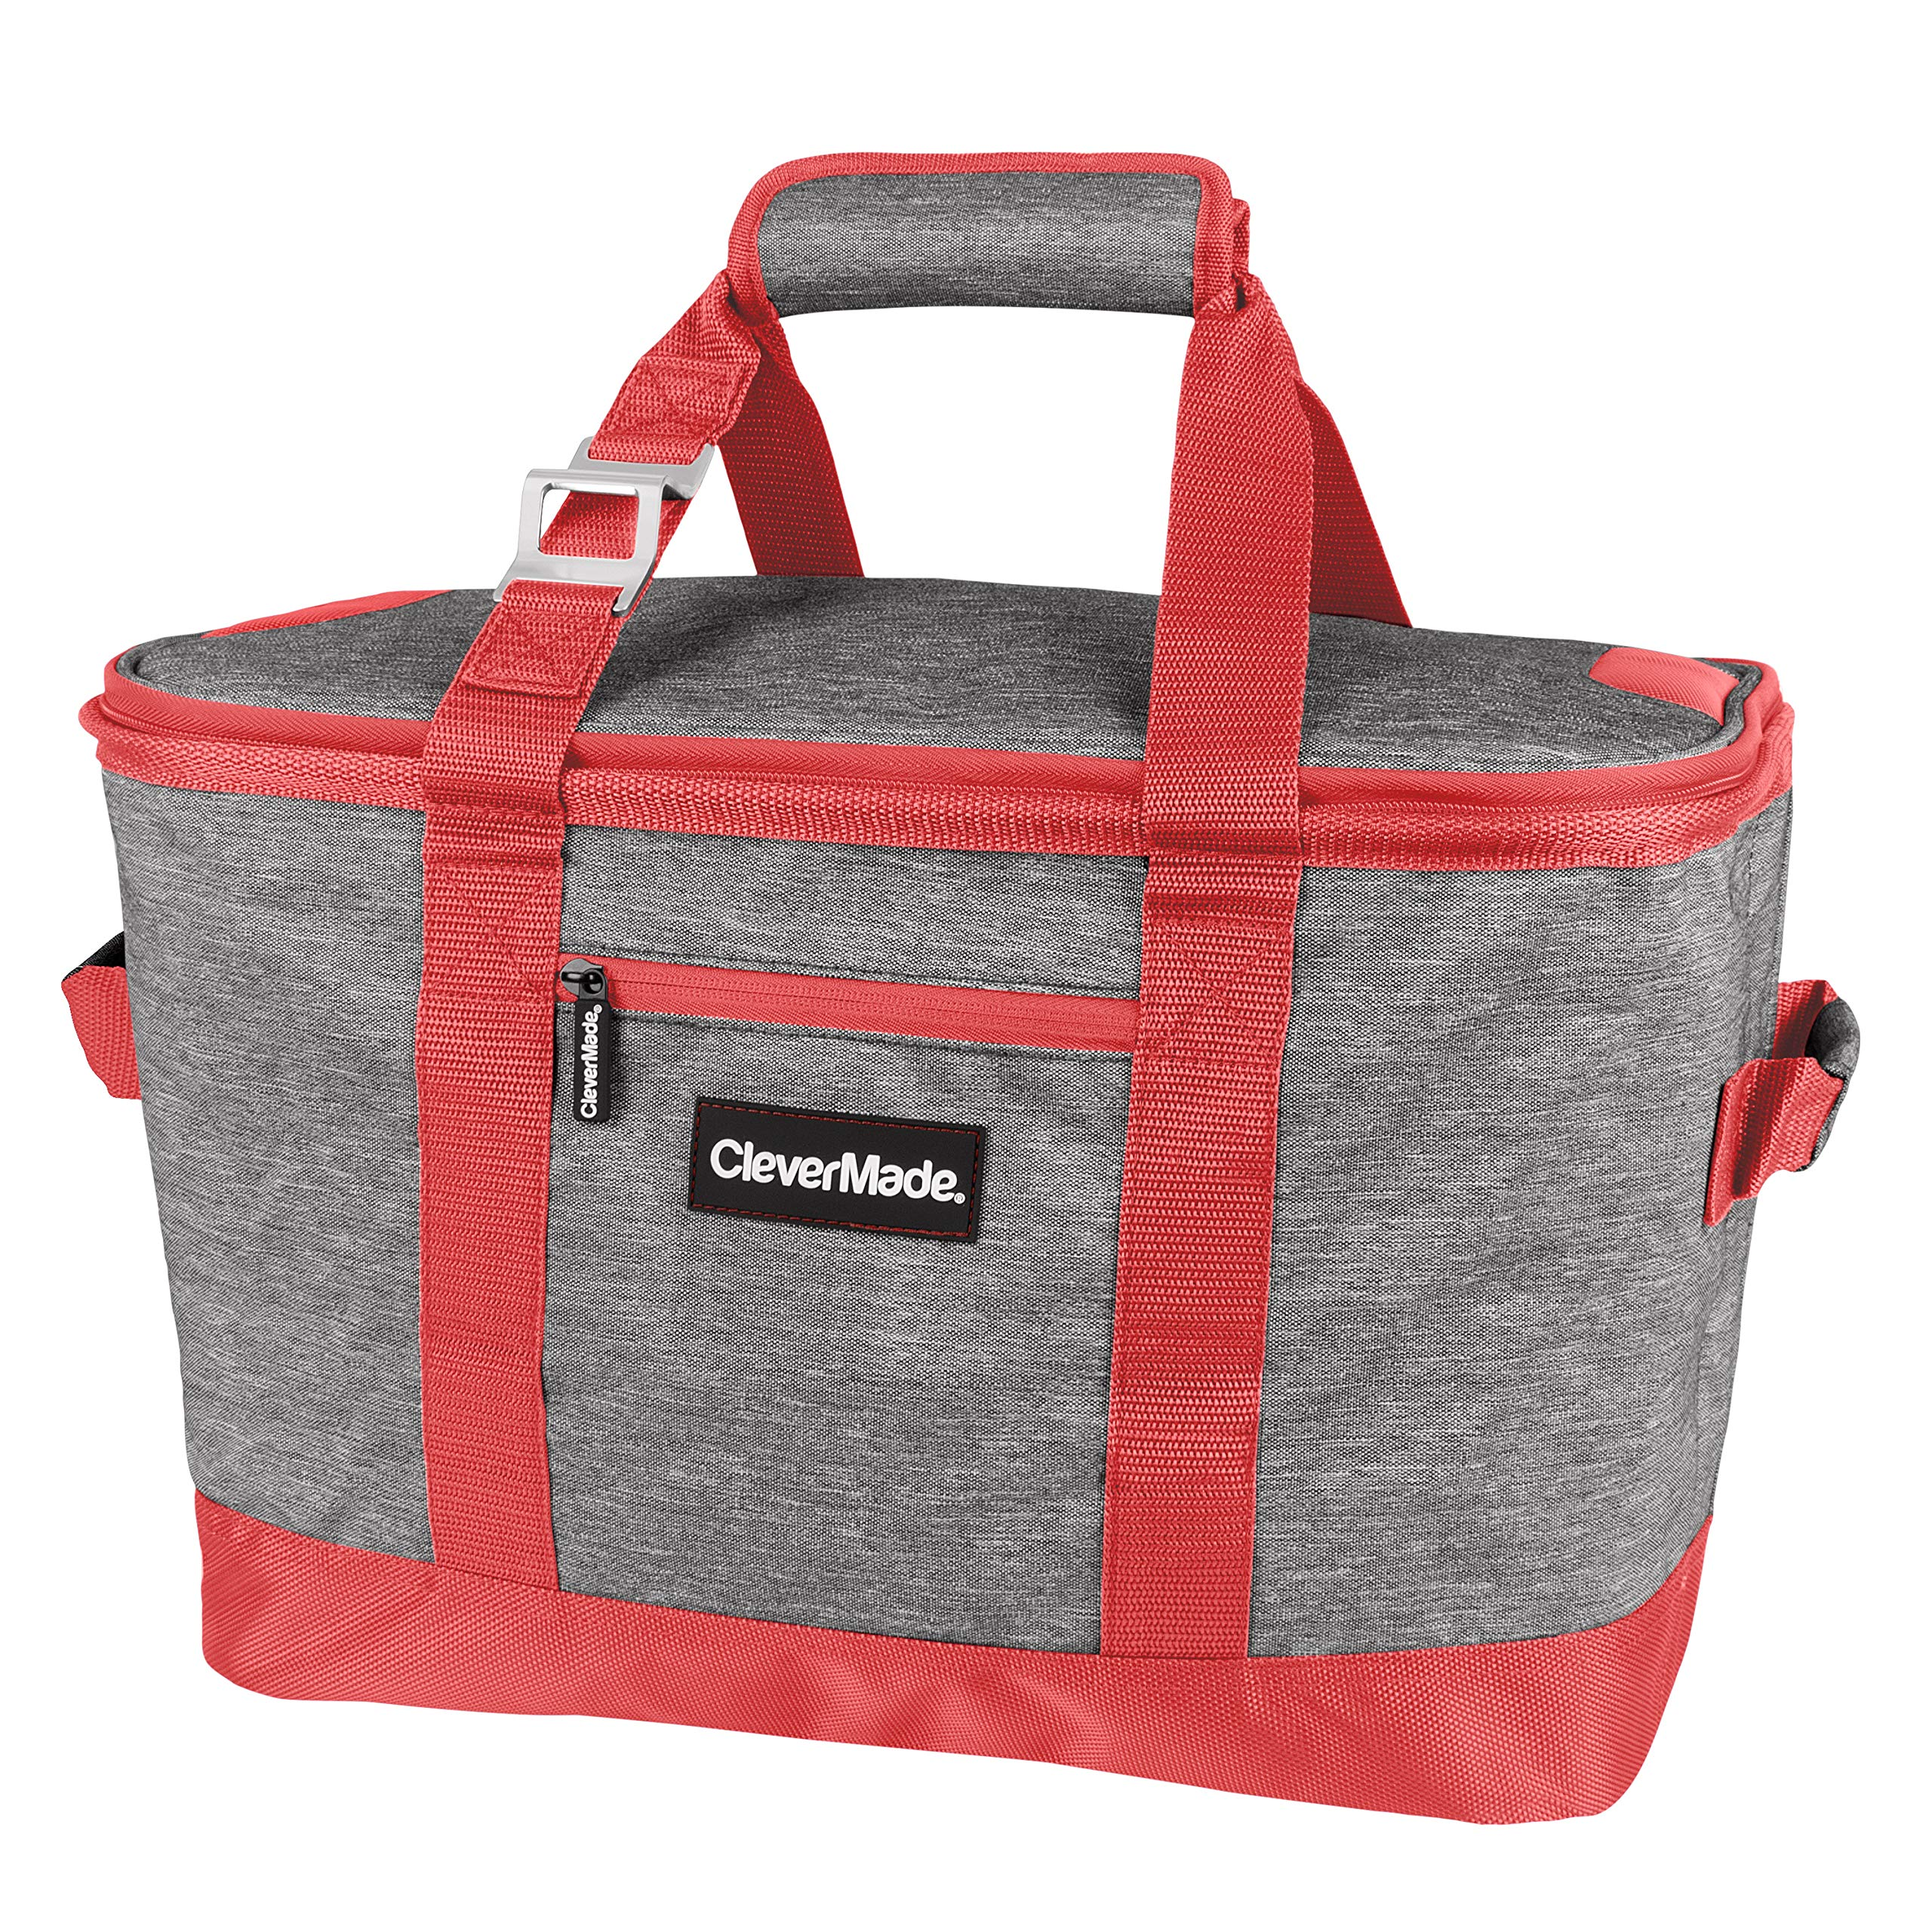 CleverMade Collapsible Cooler Bag: Insulated Leakproof 50 Can Soft Sided Portable Cooler Bag for Lunch, Grocery Shopping, Camping and Road Trips, Heather Grey/Coral by CleverMade